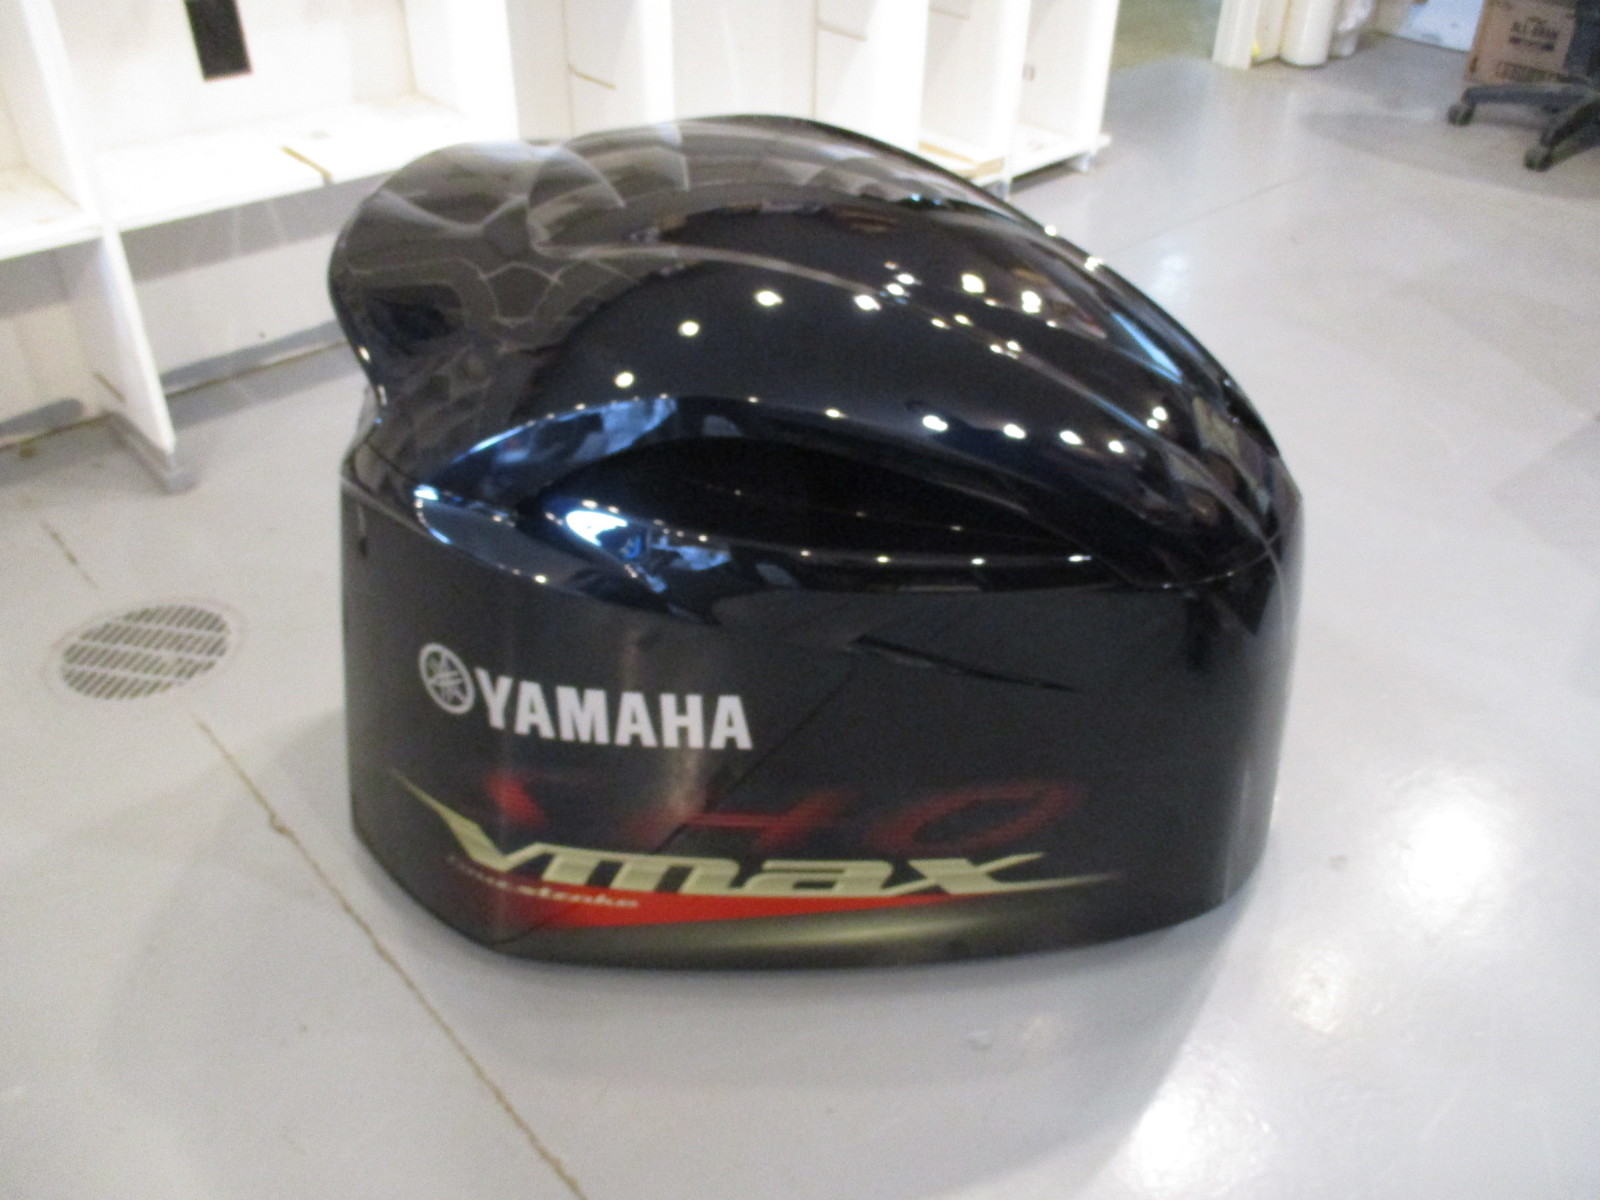 6cb 42610 04 yamaha outboard top engine motor cover cowl for Yamaha boat motor cover